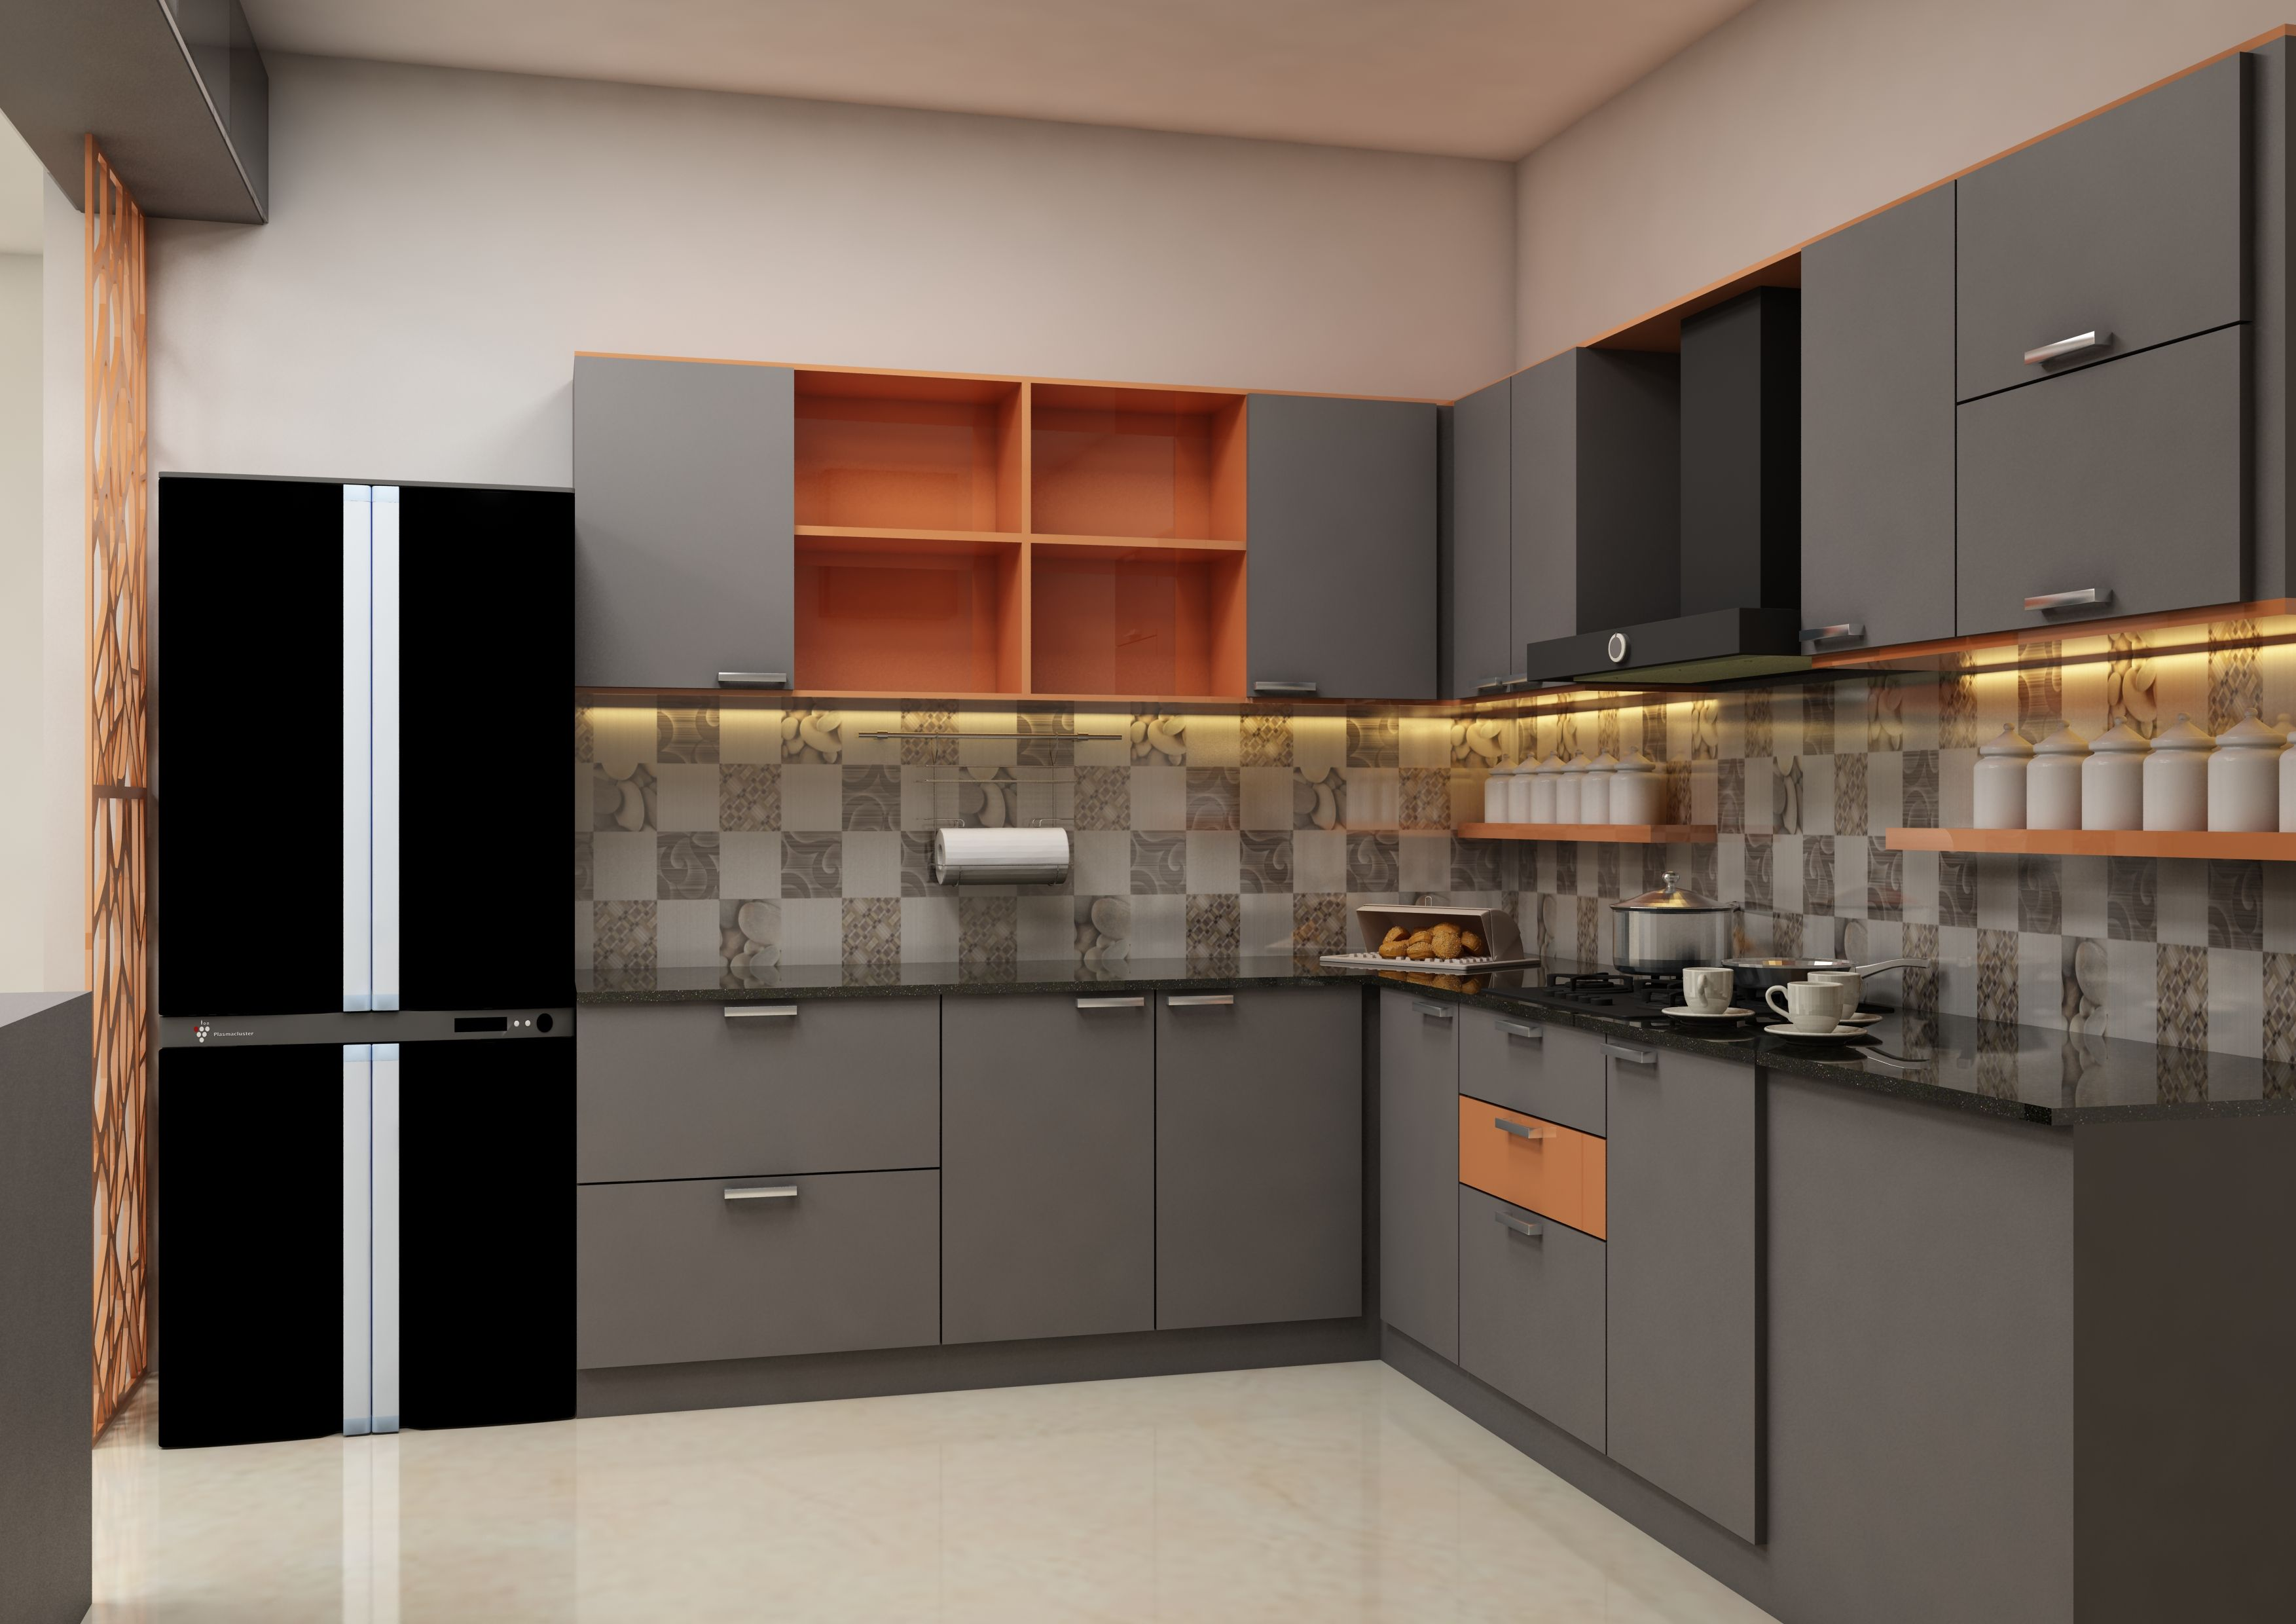 Make This Kitchen Unit Yours By Customizing The Same From Scale Inch At The Best Price. For M… | Kitchen Furniture Design, Interior Design Kitchen, Kitchen Interior